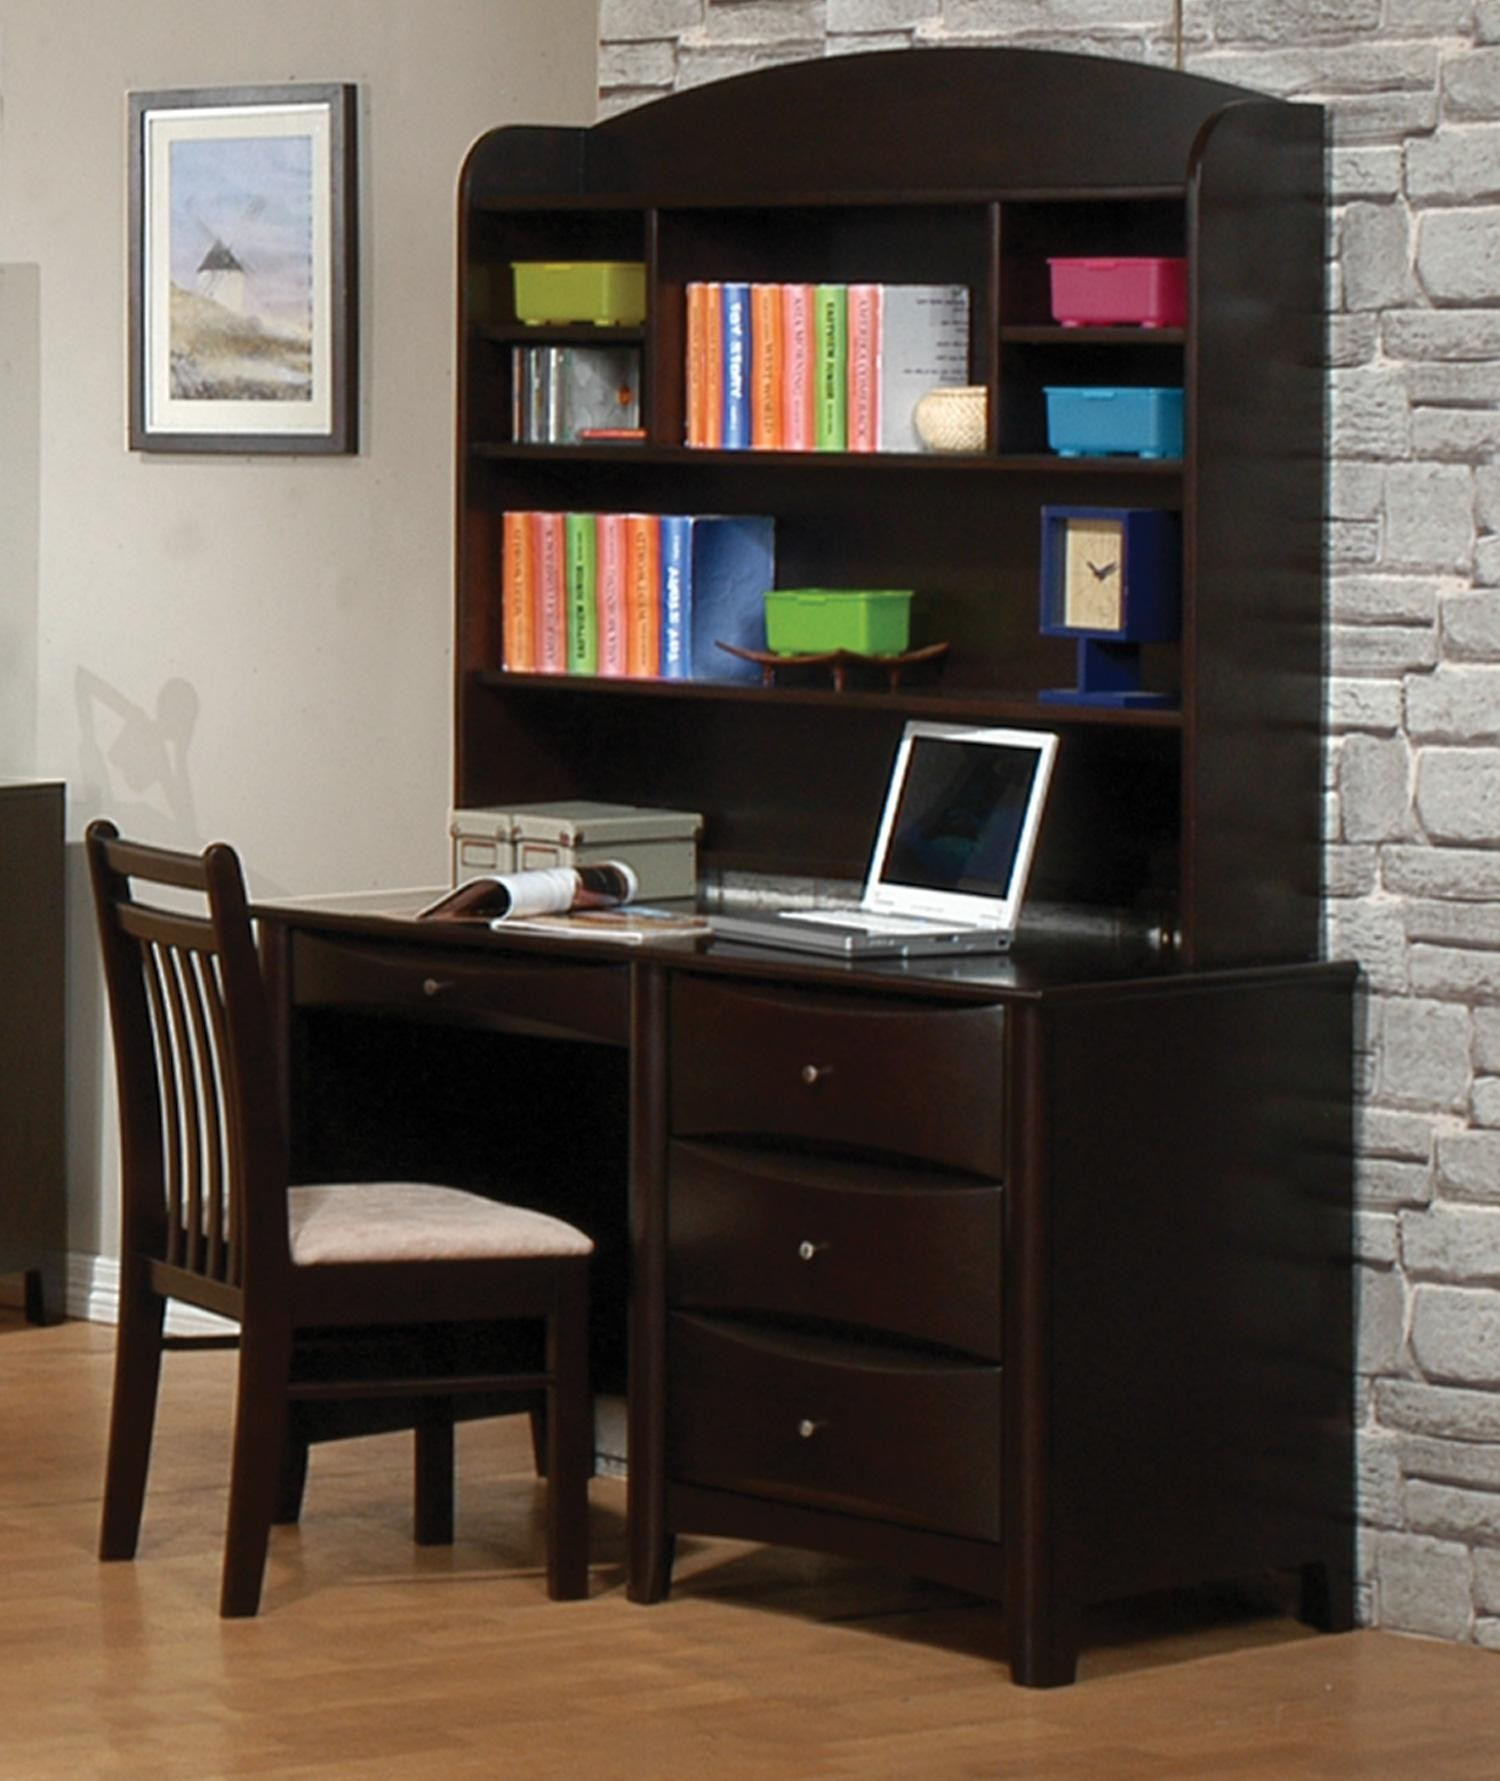 Phoenix youth storage bedroom set 400180 from coaster - Youth bedroom furniture with storage ...